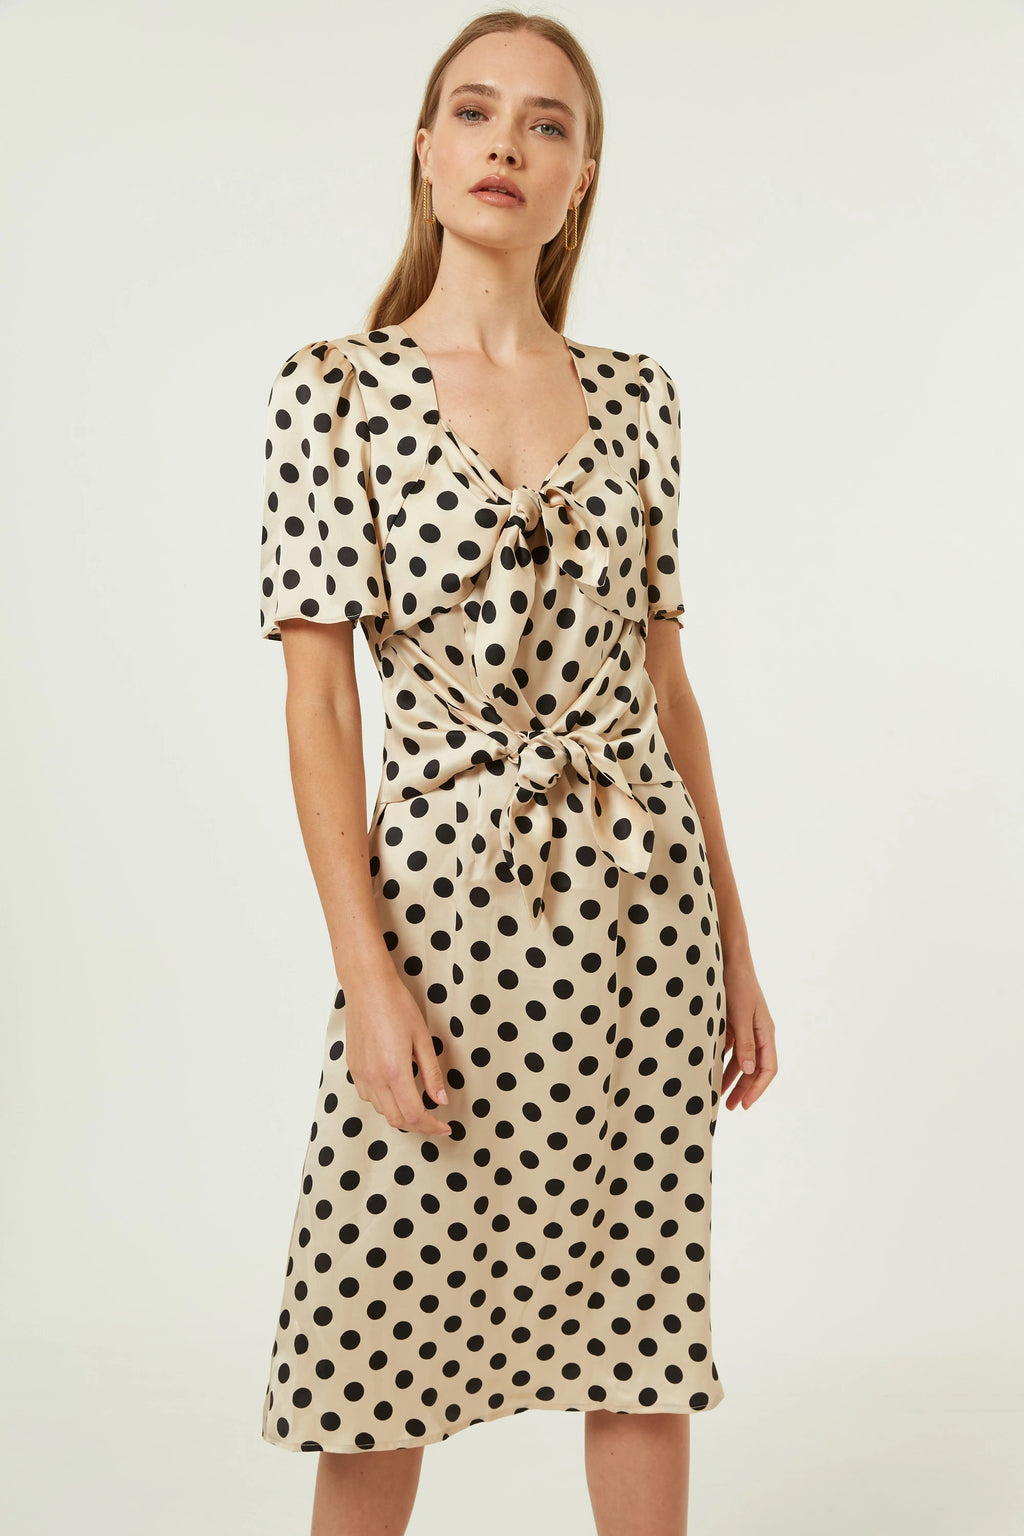 Jovonna London beige with black polka dot midi length dress in a relaxed fit with a subtle queen Anne neckline. Short sleeved with front tie details that can be tied to create a bow detail and cinch in waist.